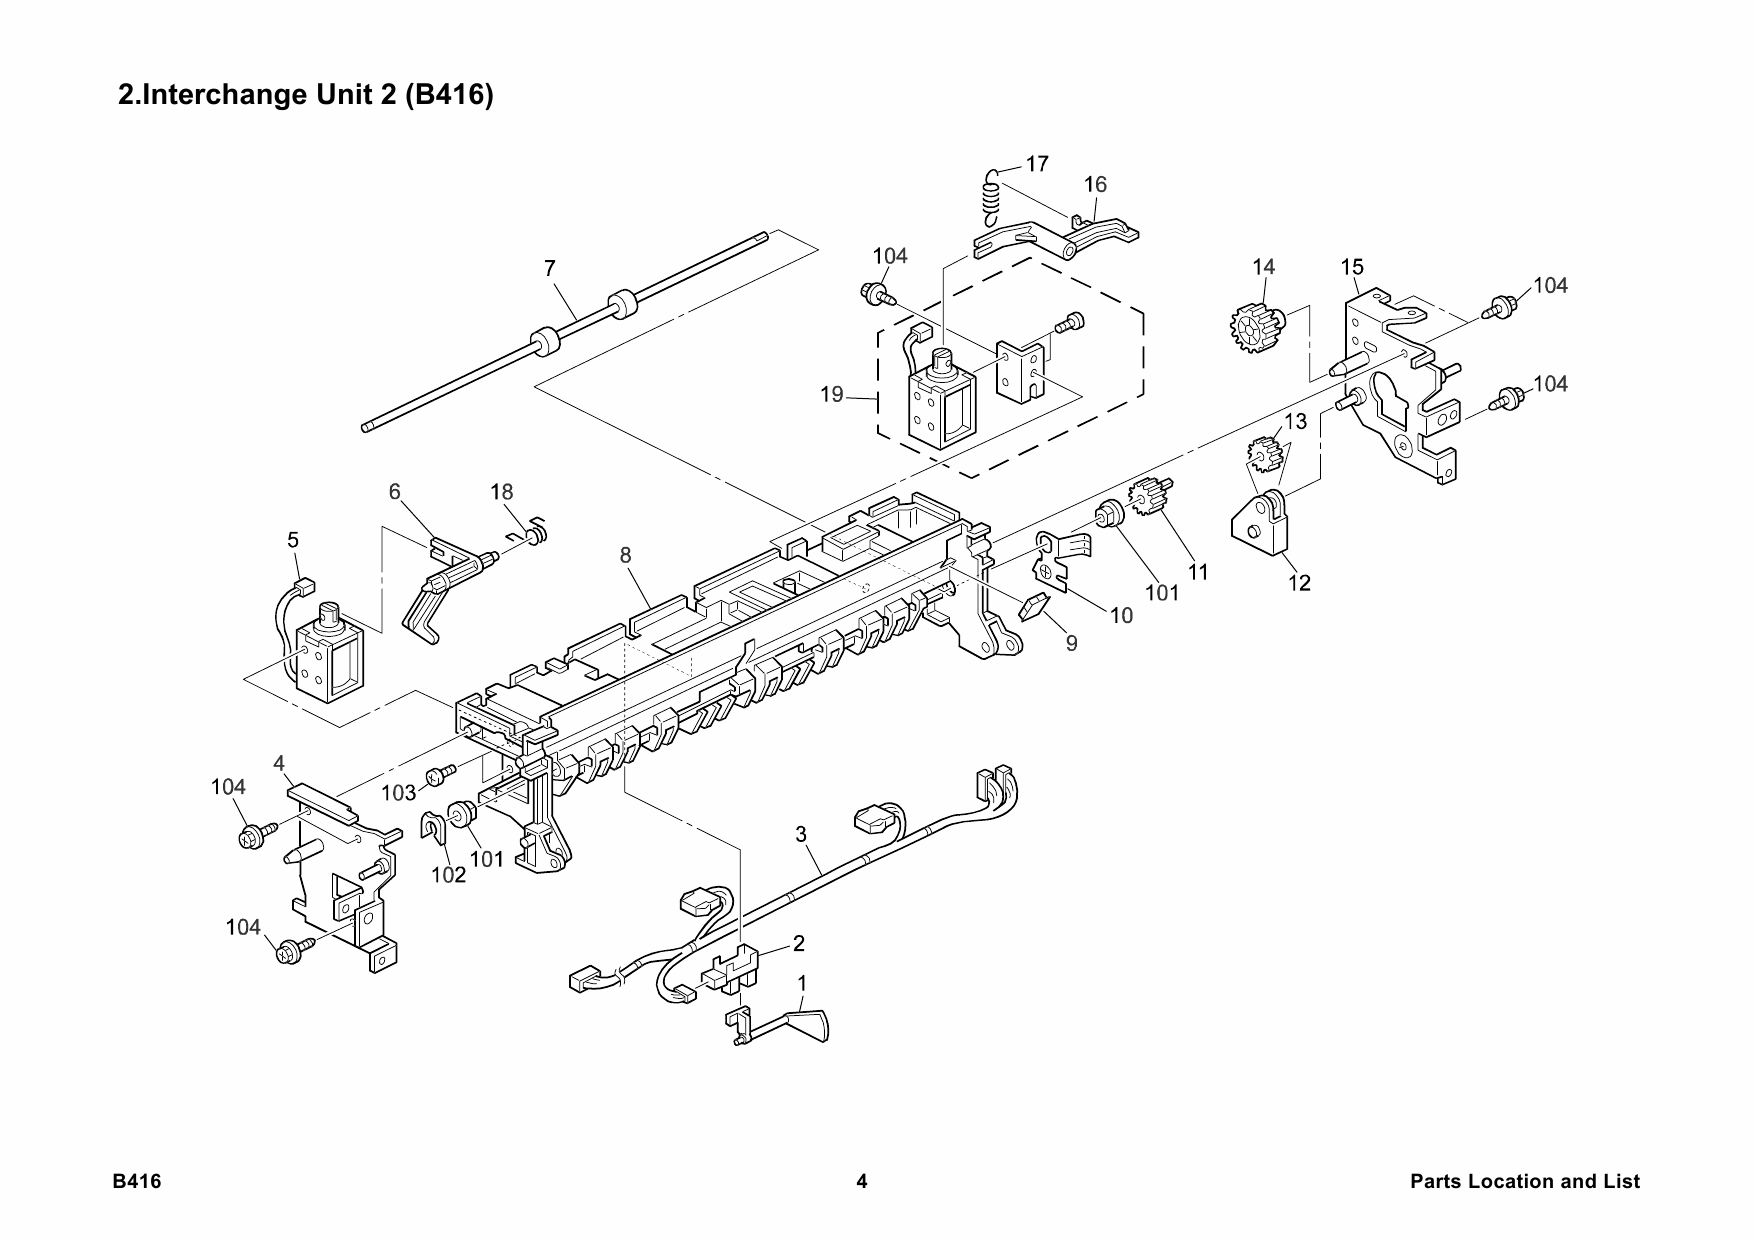 RICOH Options B416 INTERCHANGE-UNIT Parts Catalog PDF download